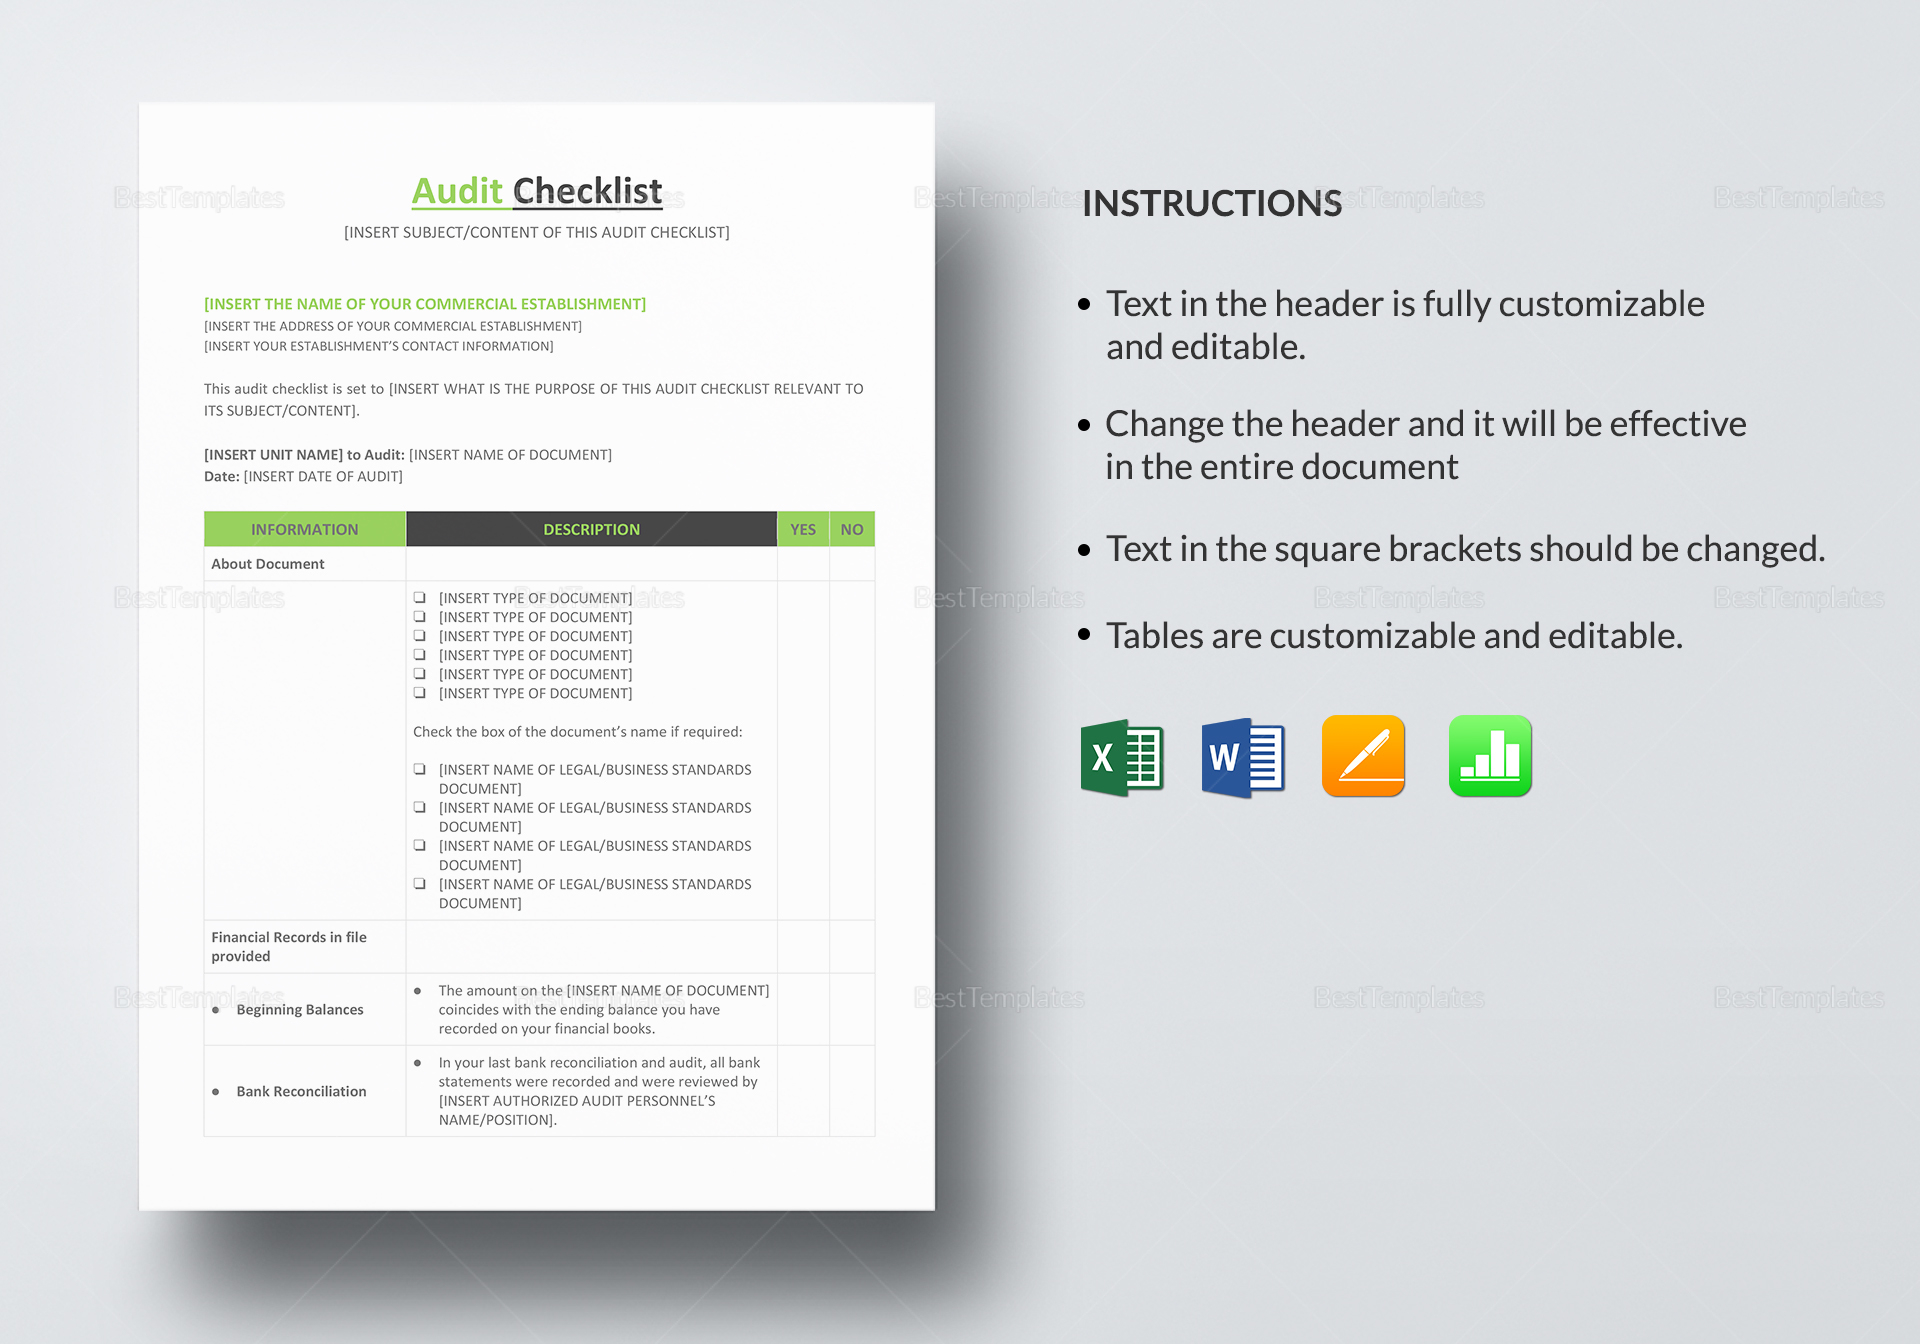 Audit Checklist Template to Print